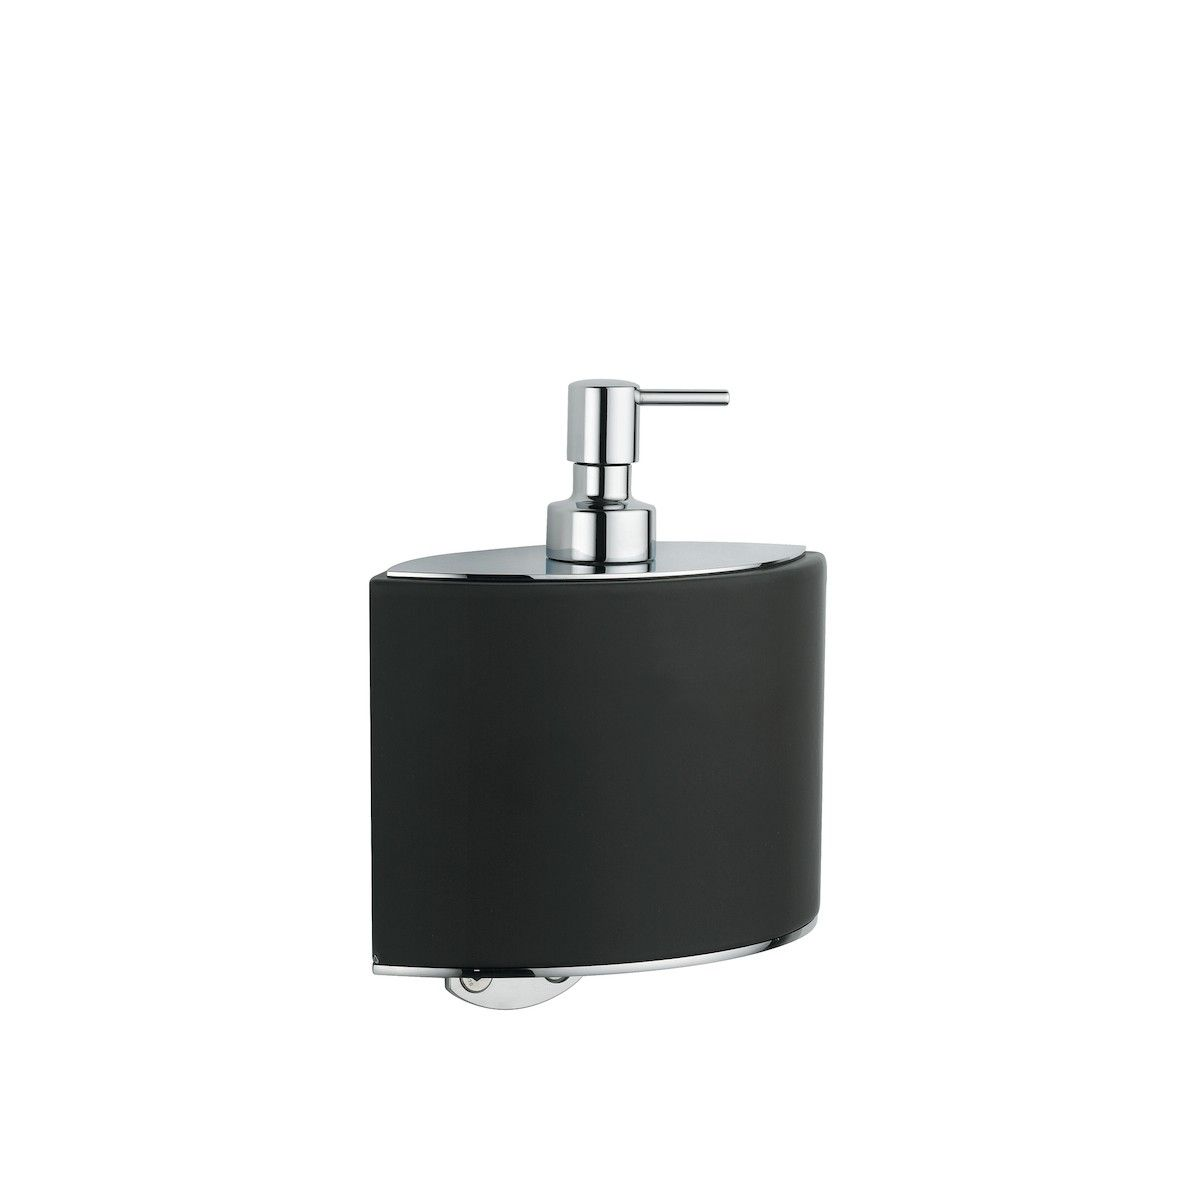 harmony s free standing soap dispenser in chrome or nickel from  - elegant designer modern highend luxurious black ceramic wall mounted soapdispenser with chromed brass